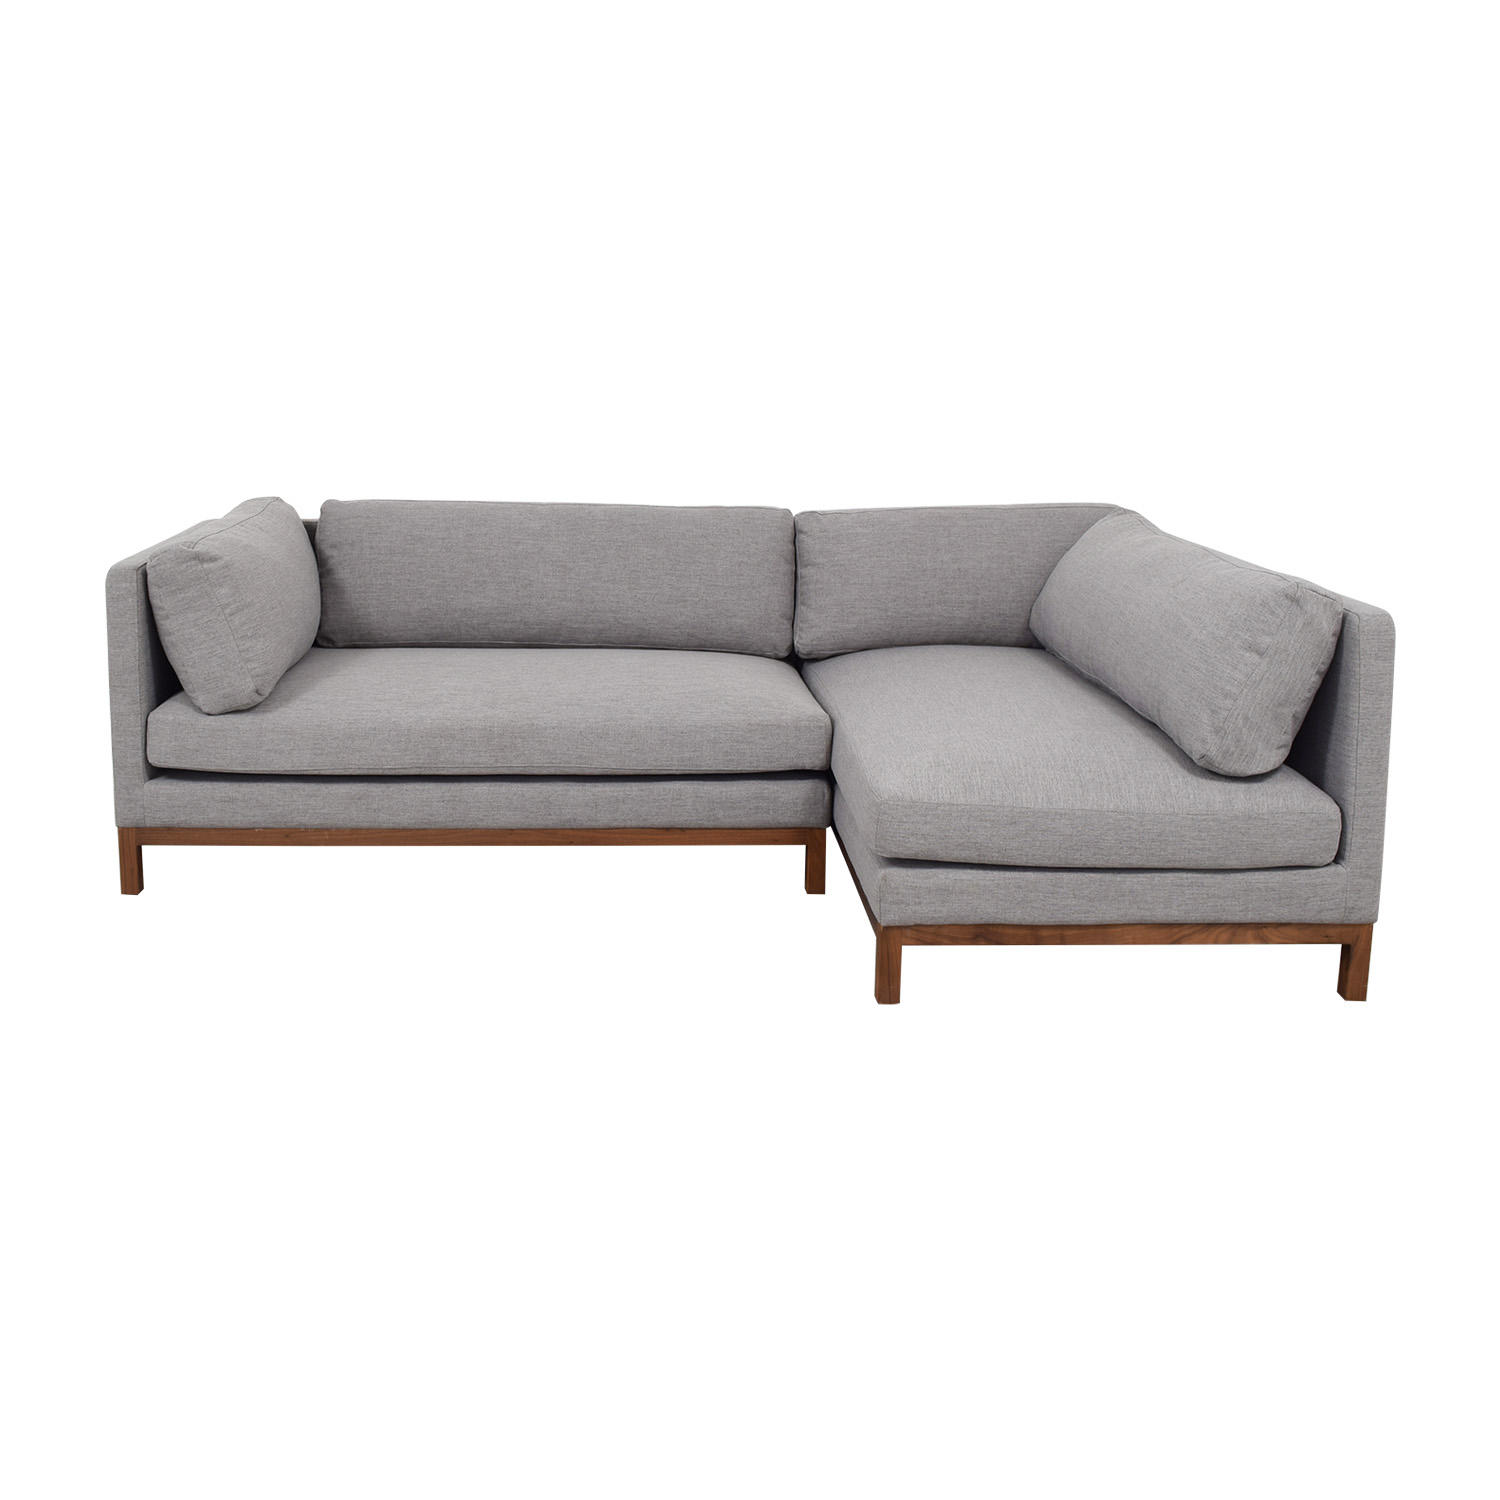 Grey Chaise Sectional with Wood Base / Sofas